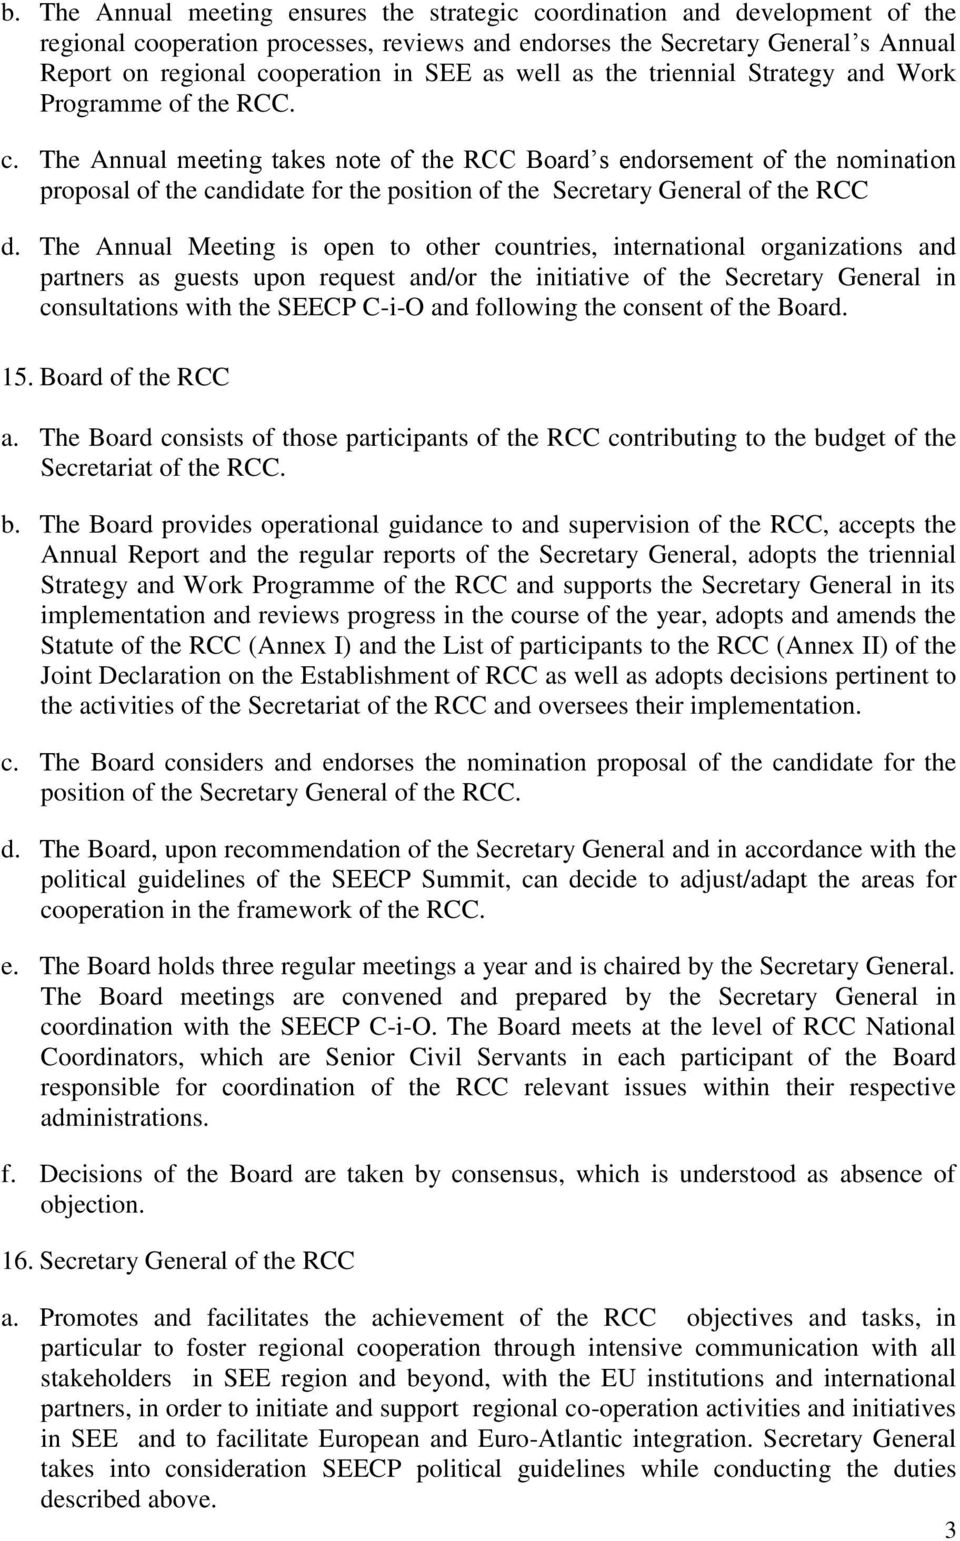 The Annual meeting takes note of the RCC Board s endorsement of the nomination proposal of the candidate for the position of the Secretary General of the RCC d.